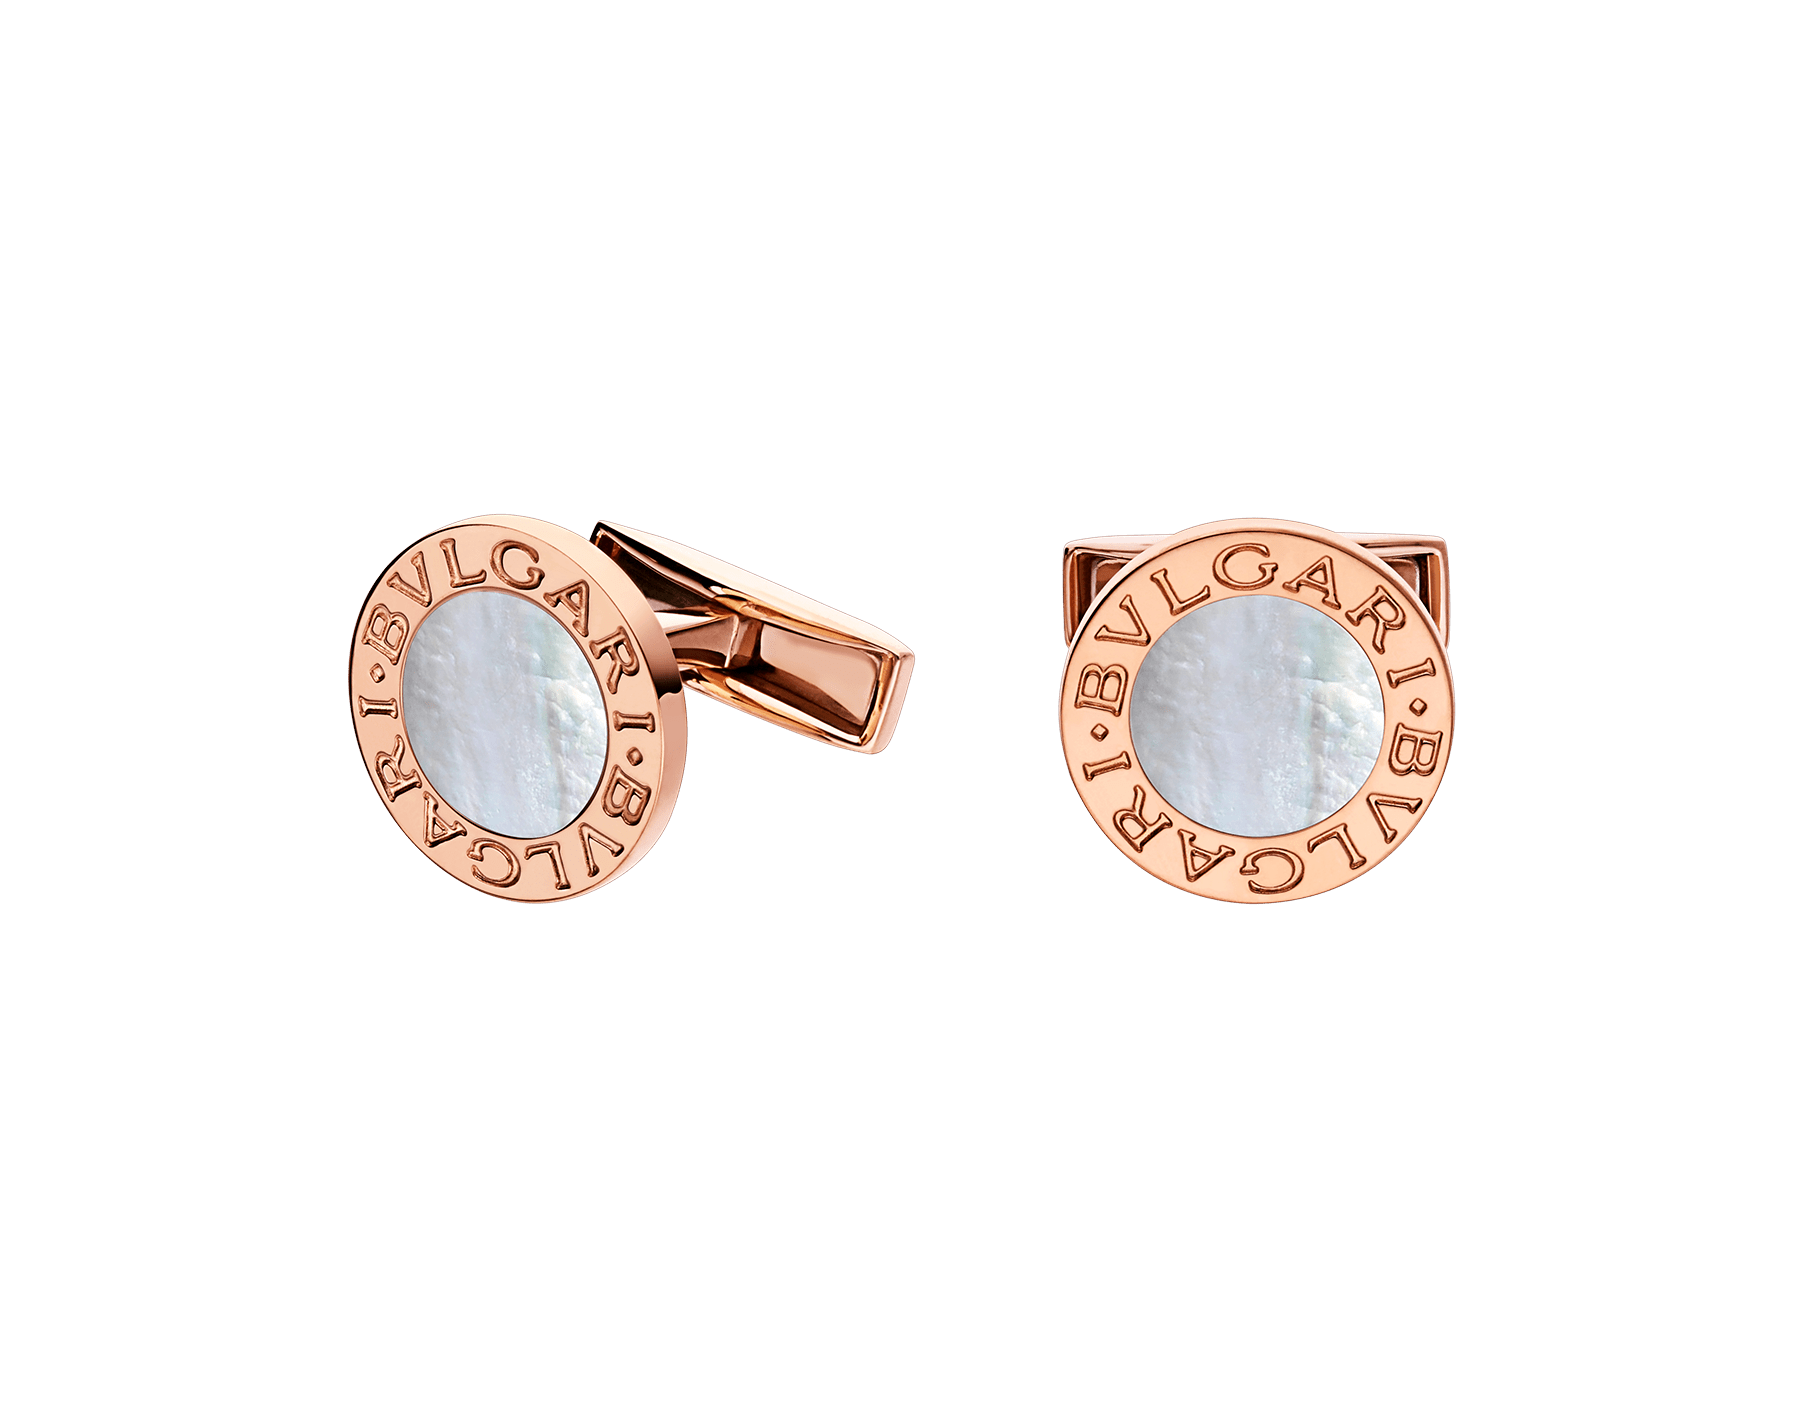 BVLGARI BVLGARI 18kt rose gold cufflinks set with mother-of-pearl elements 344428 image 1